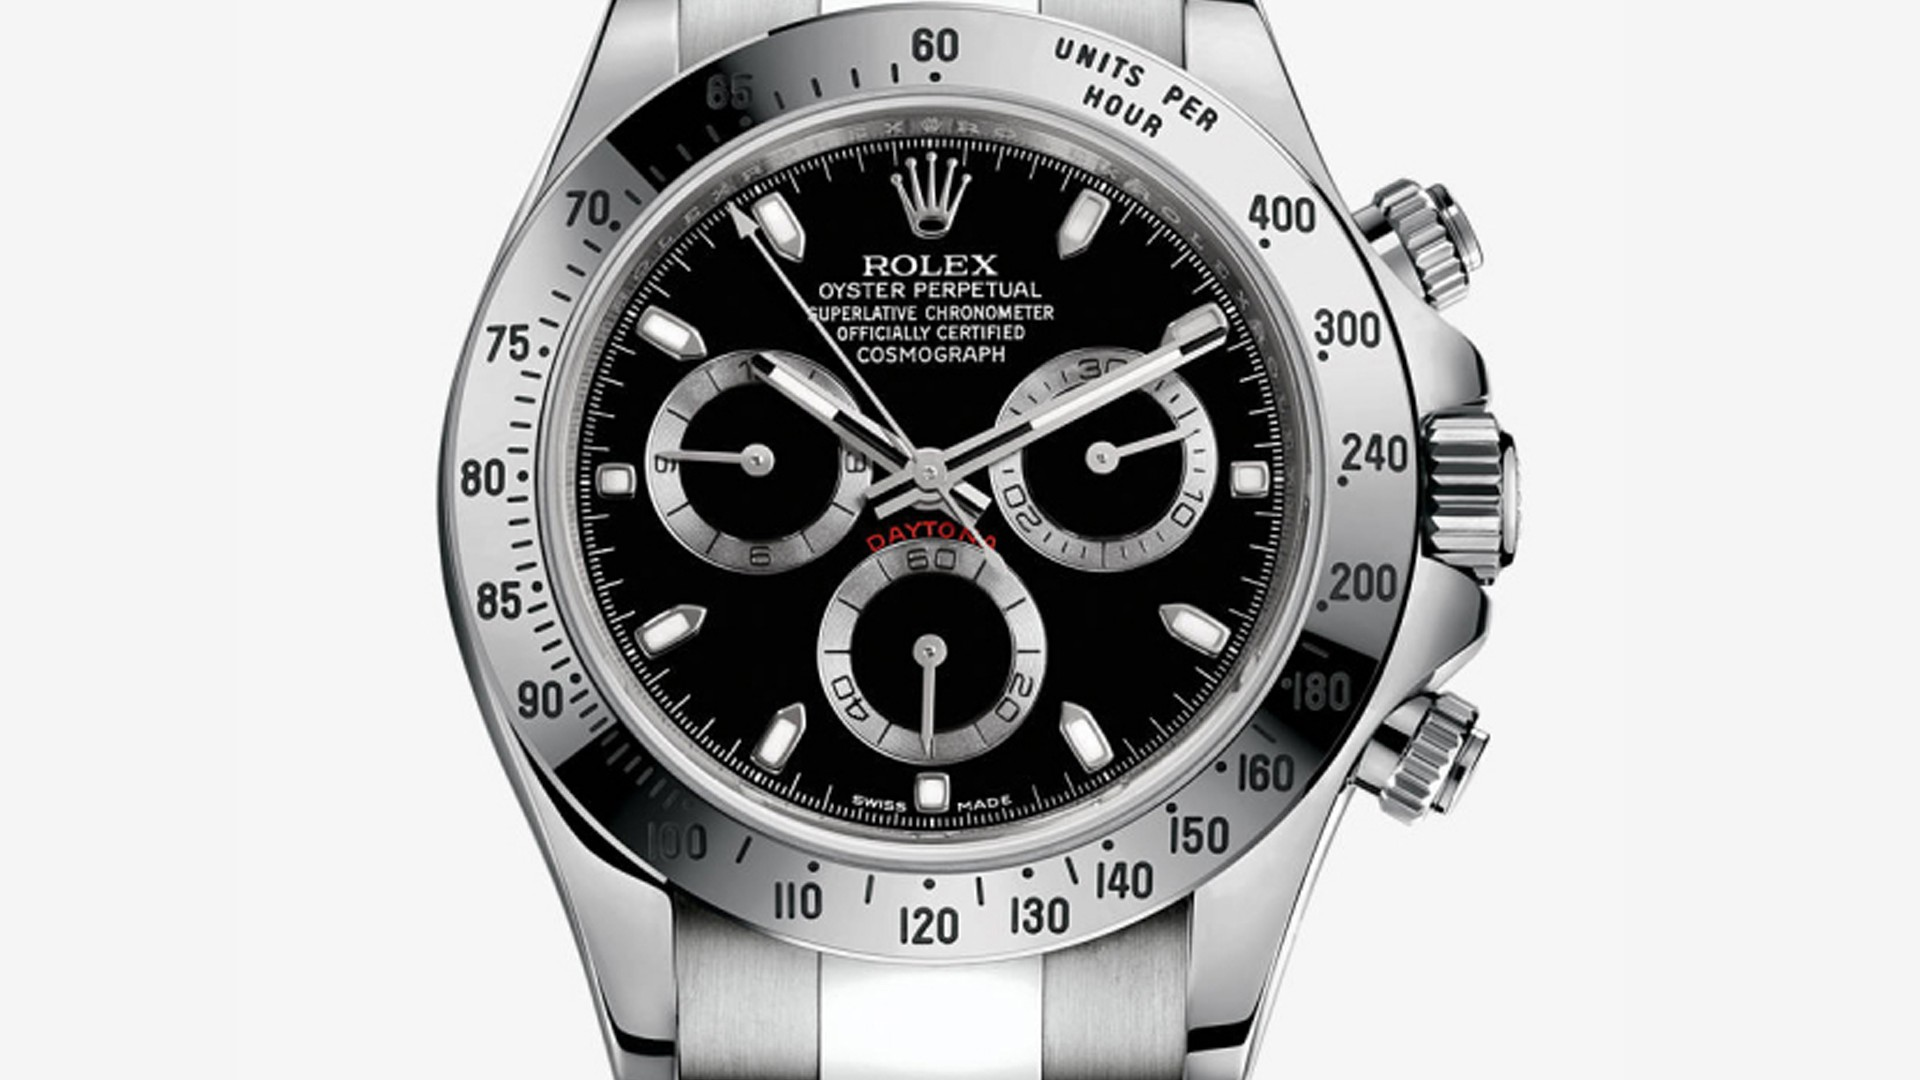 Rolex Cosmograph Daytona 116520 in stainless steel